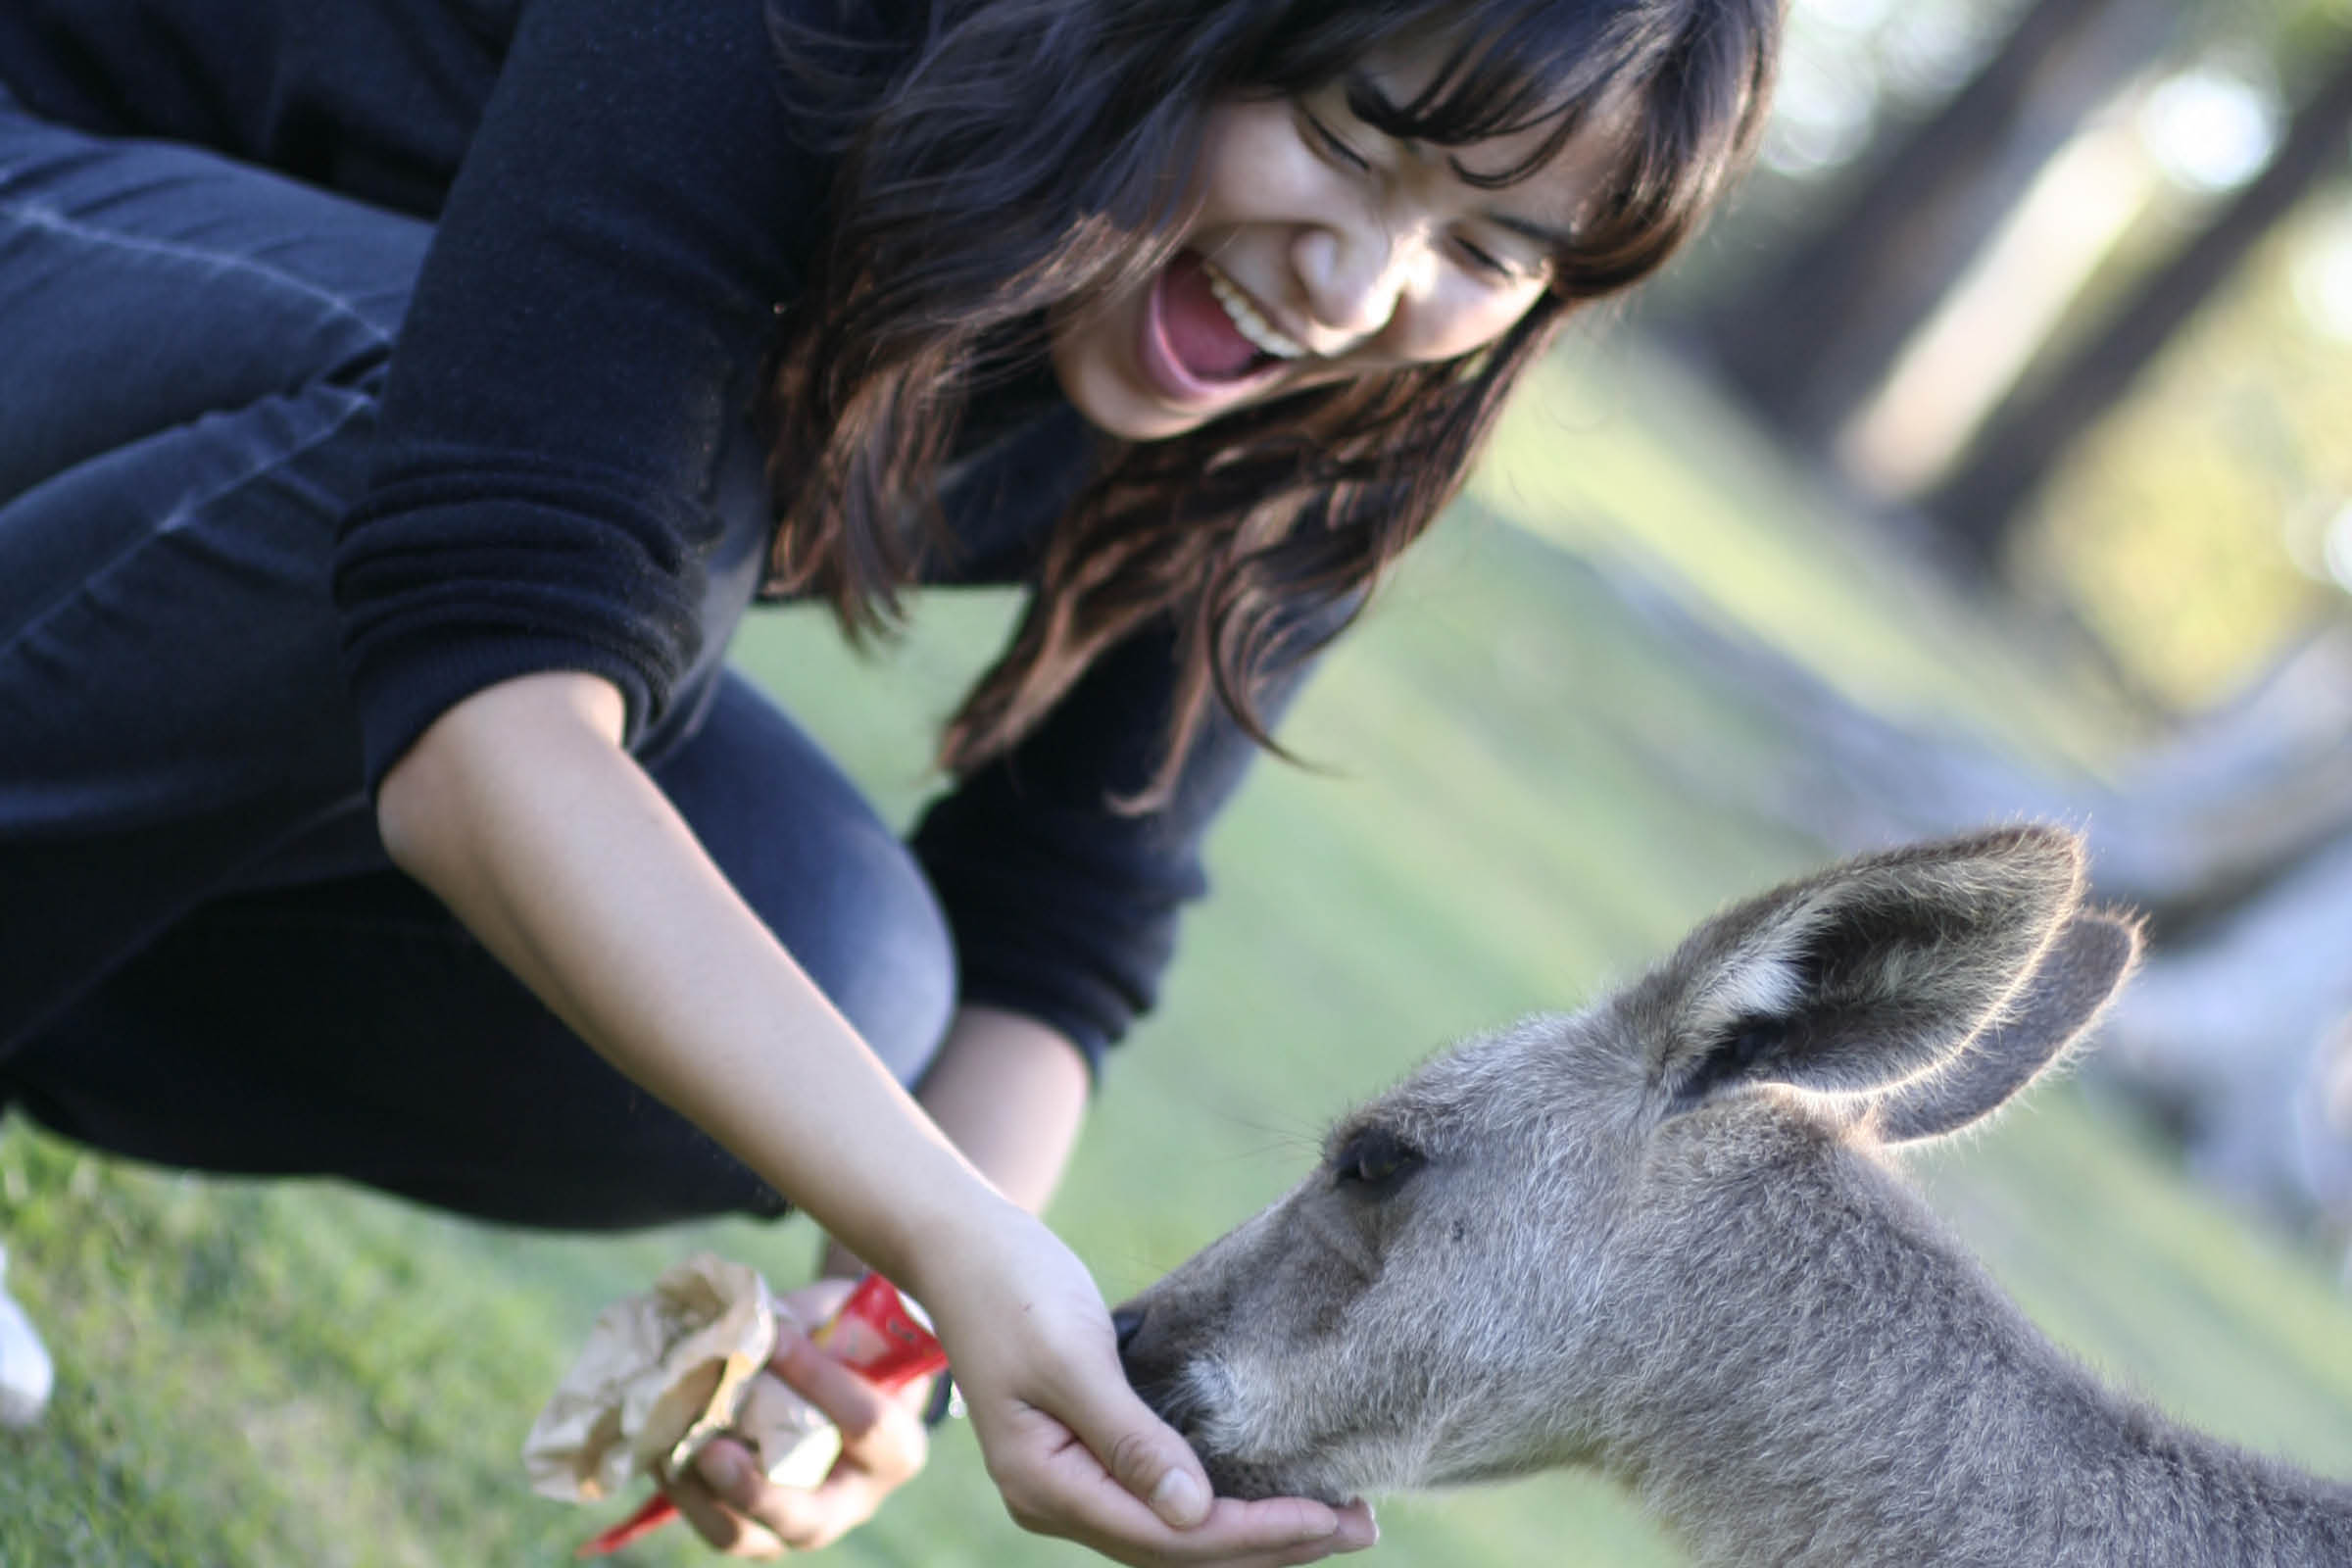 A woman feeding a kangaroo.